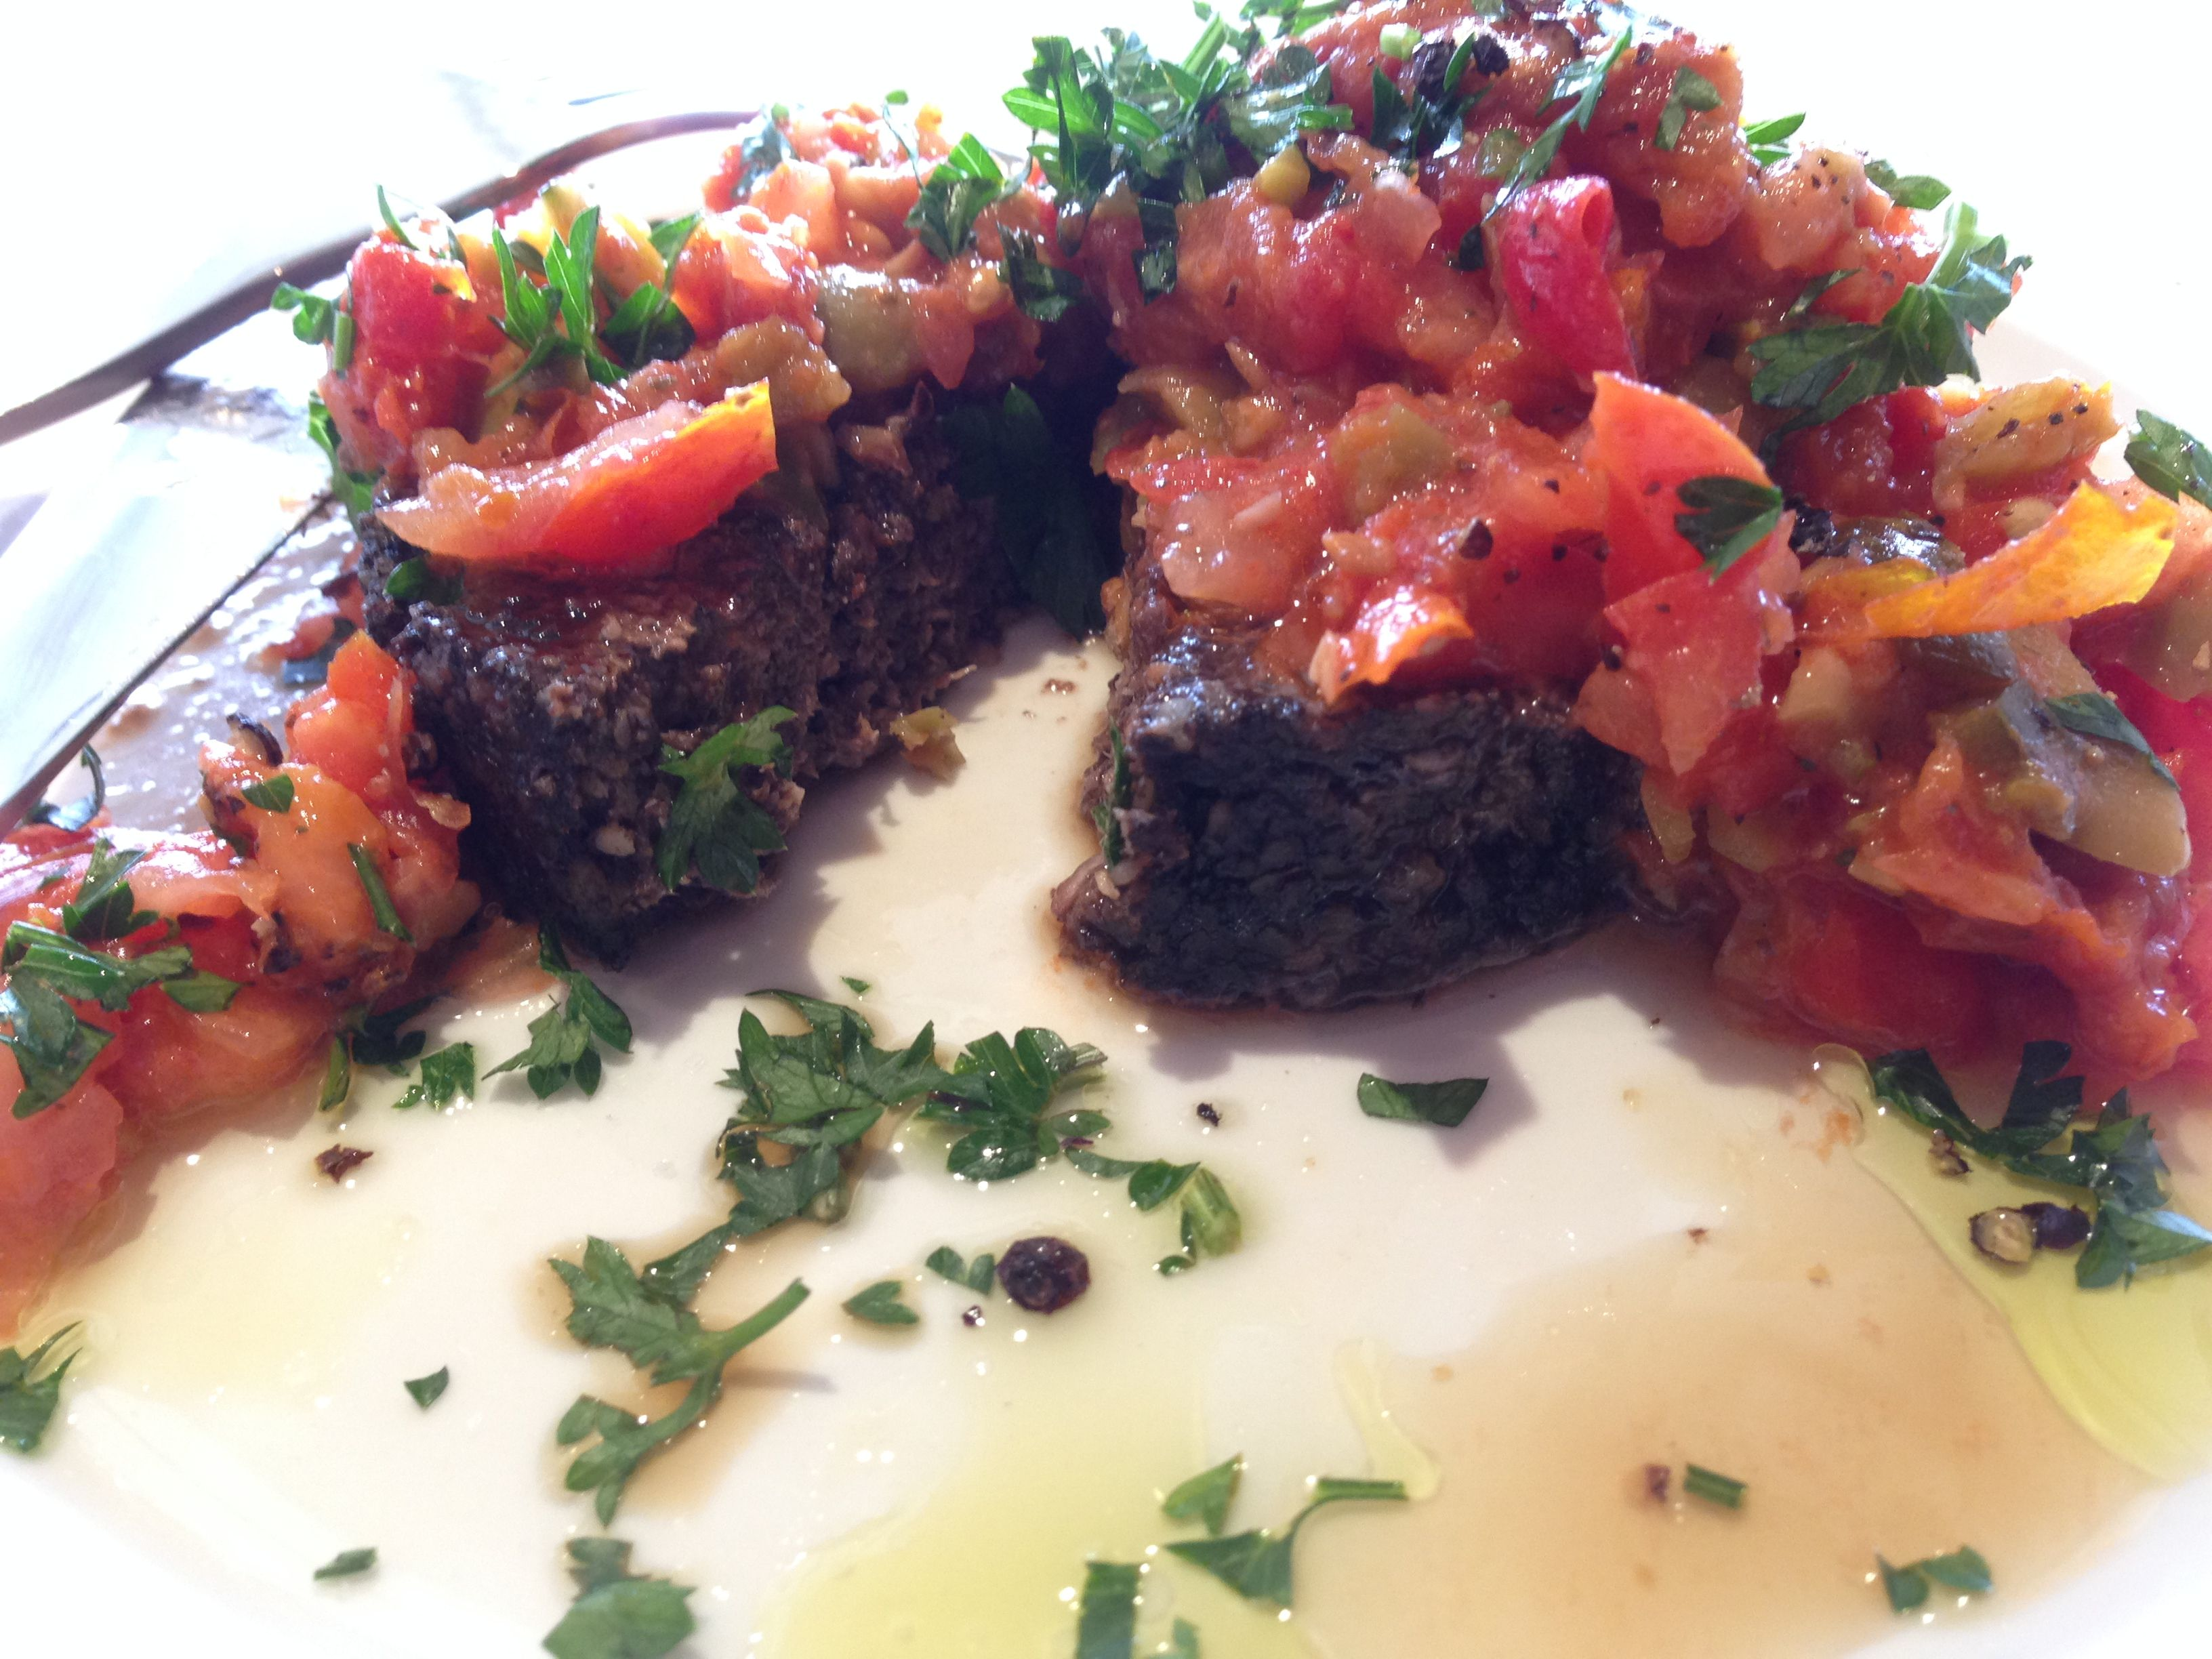 RAW Vegan Man's Shroom Burger with hot and spicy salsa !! Learn how to make these gorgeous animal free morsels .... #scottmathiasraw http://scottmathiasraw.com/classes